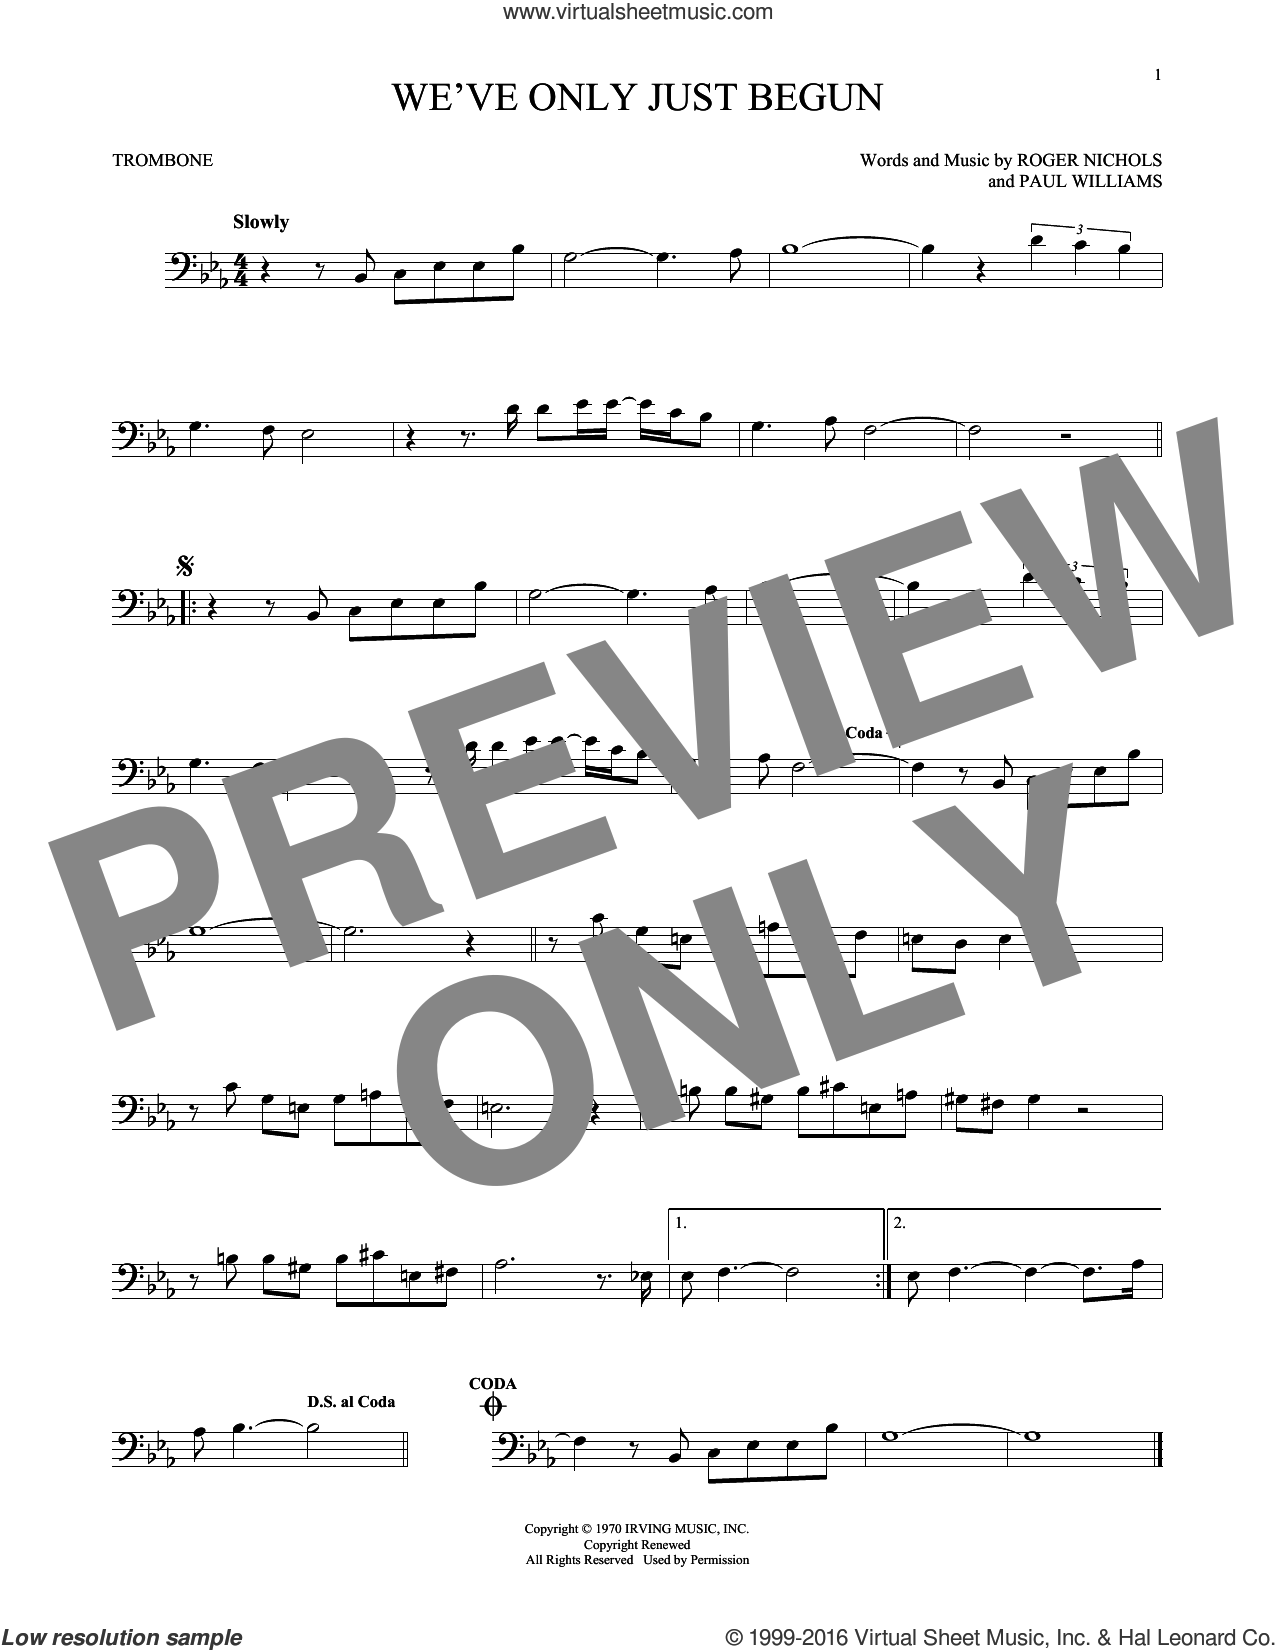 We've Only Just Begun sheet music for trombone solo by Roger Nichols, Carpenters and Paul Williams. Score Image Preview.